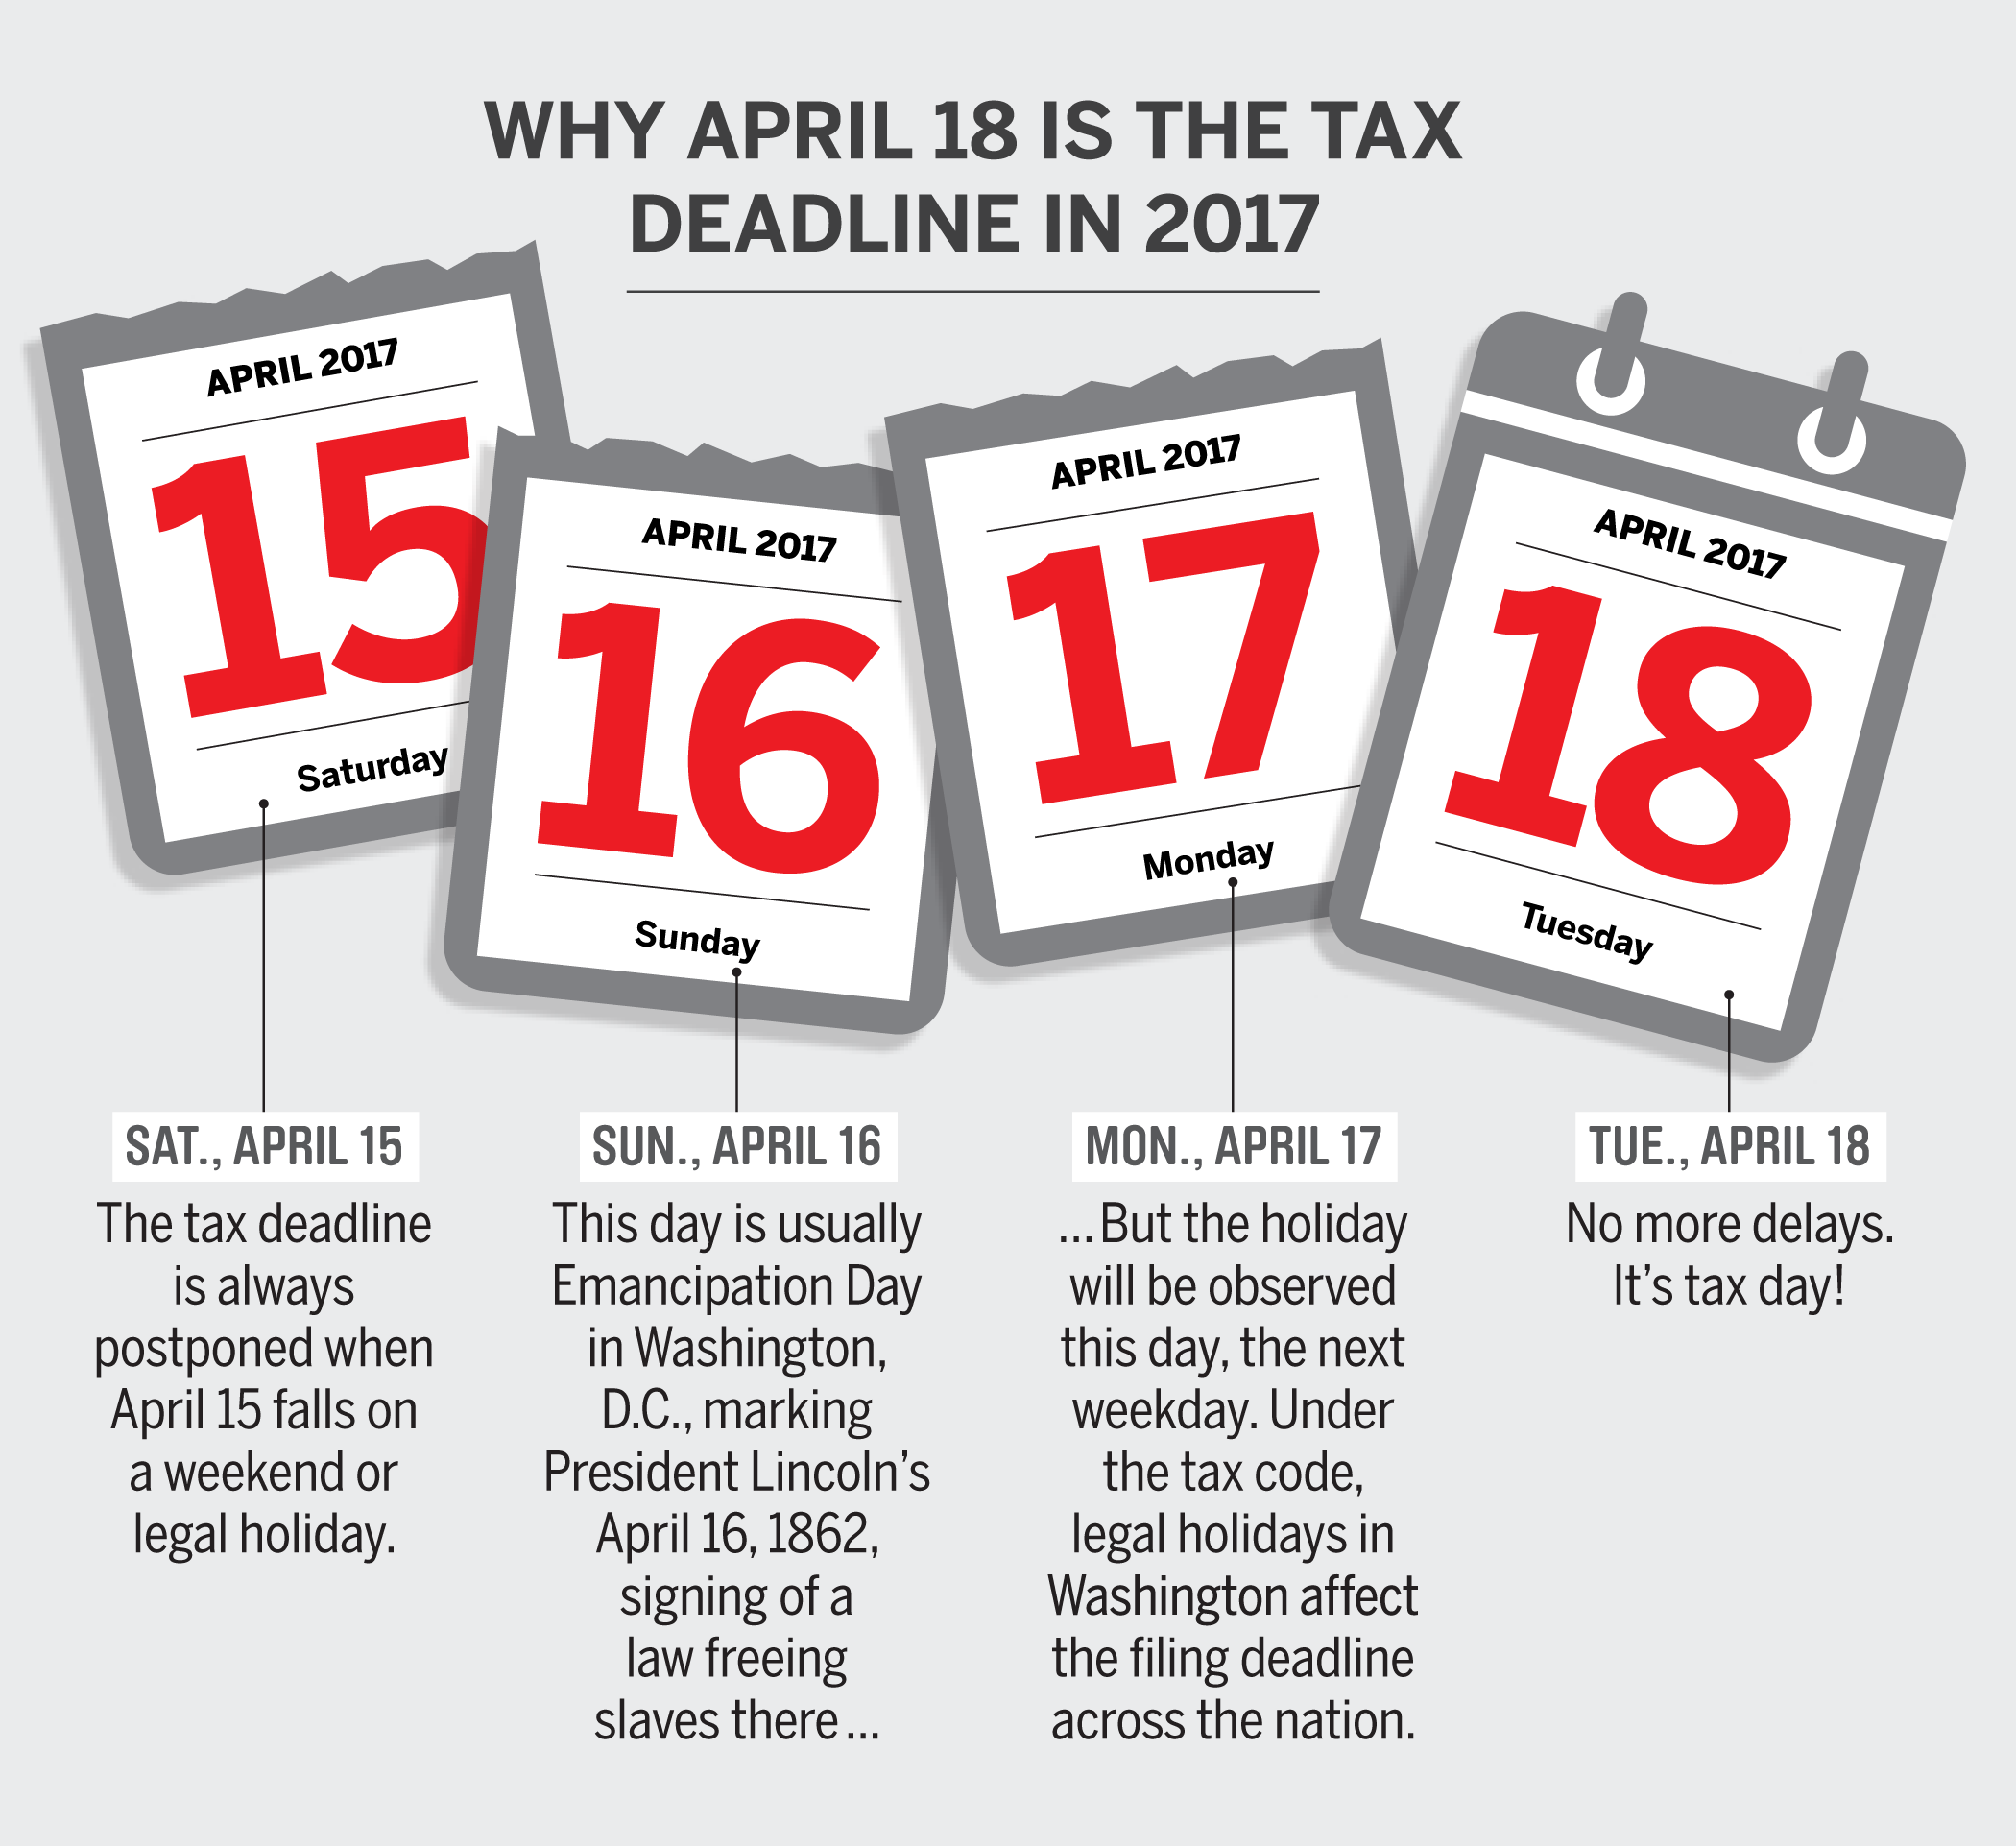 When Are Taxes Due in 2017? This Year, Itu0027s Not April 15 - Taxes Due PNG